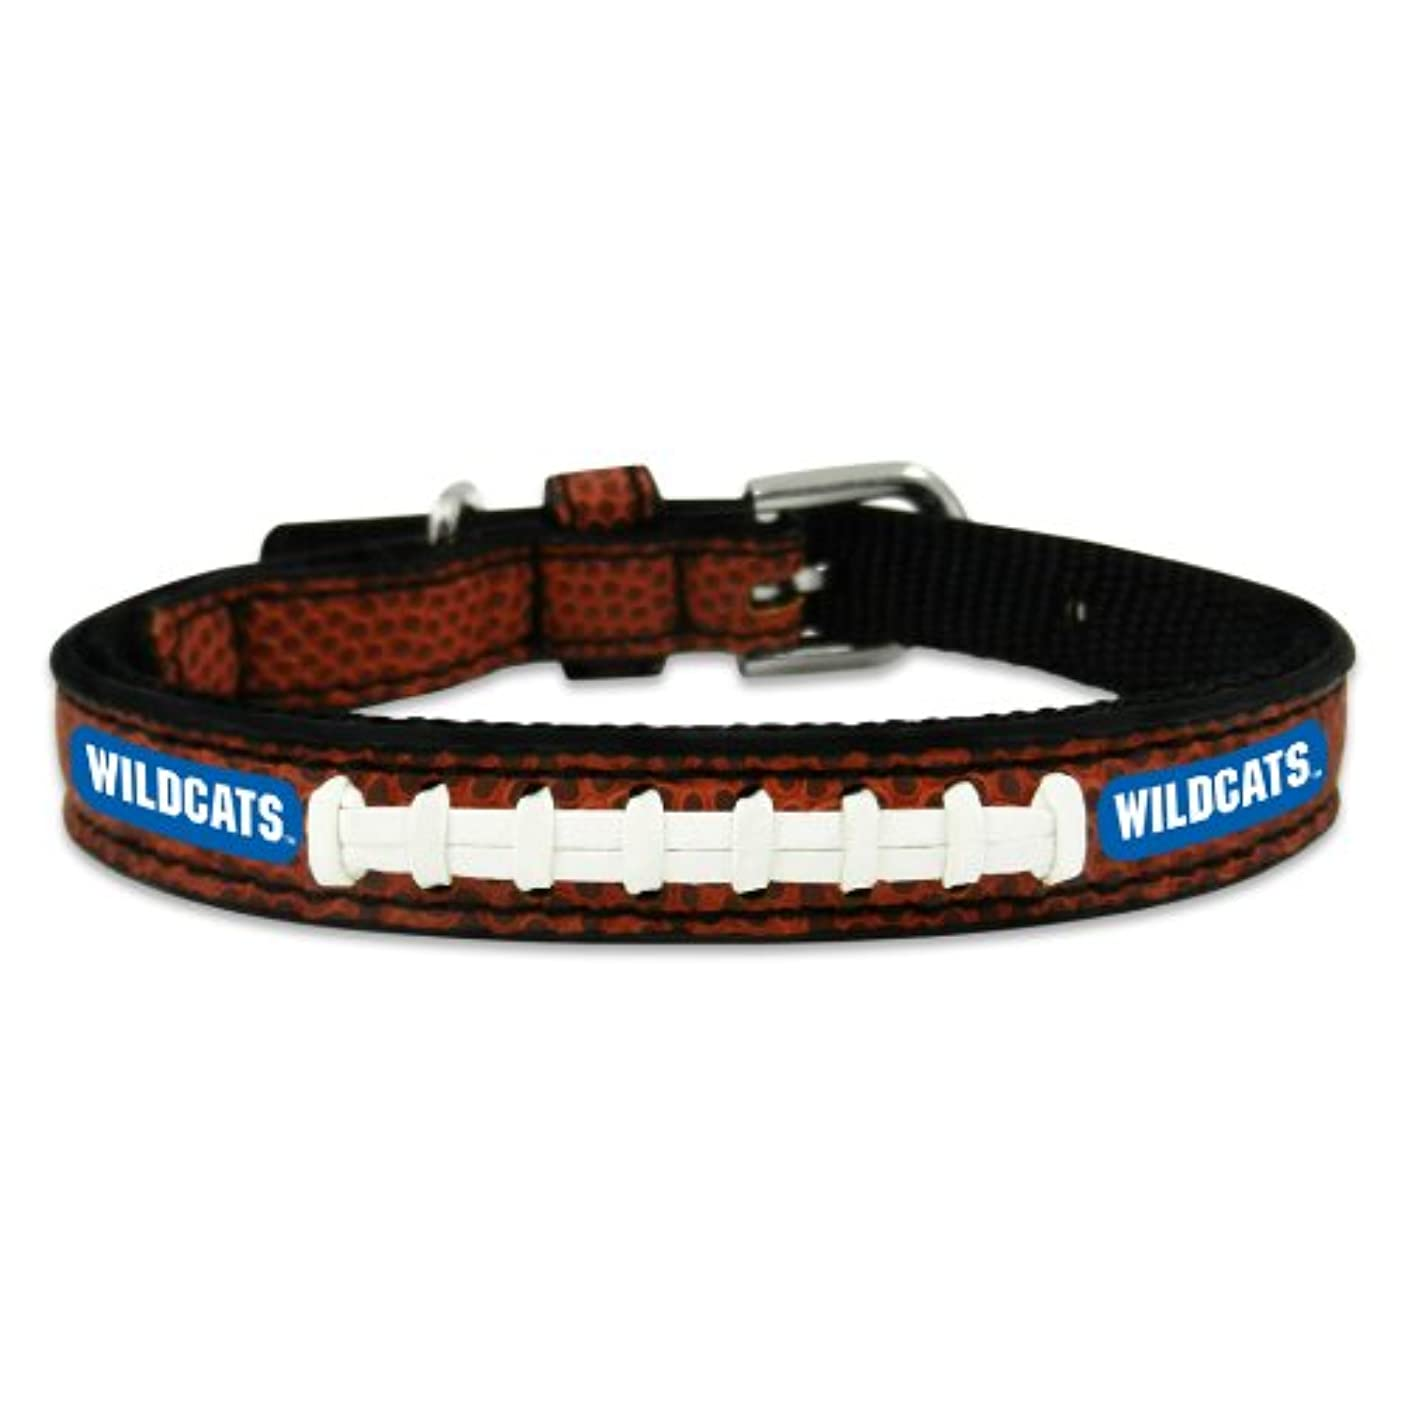 変化するリサイクルするセマフォKentucky Wildcats Classic Leather Toy Football Collar